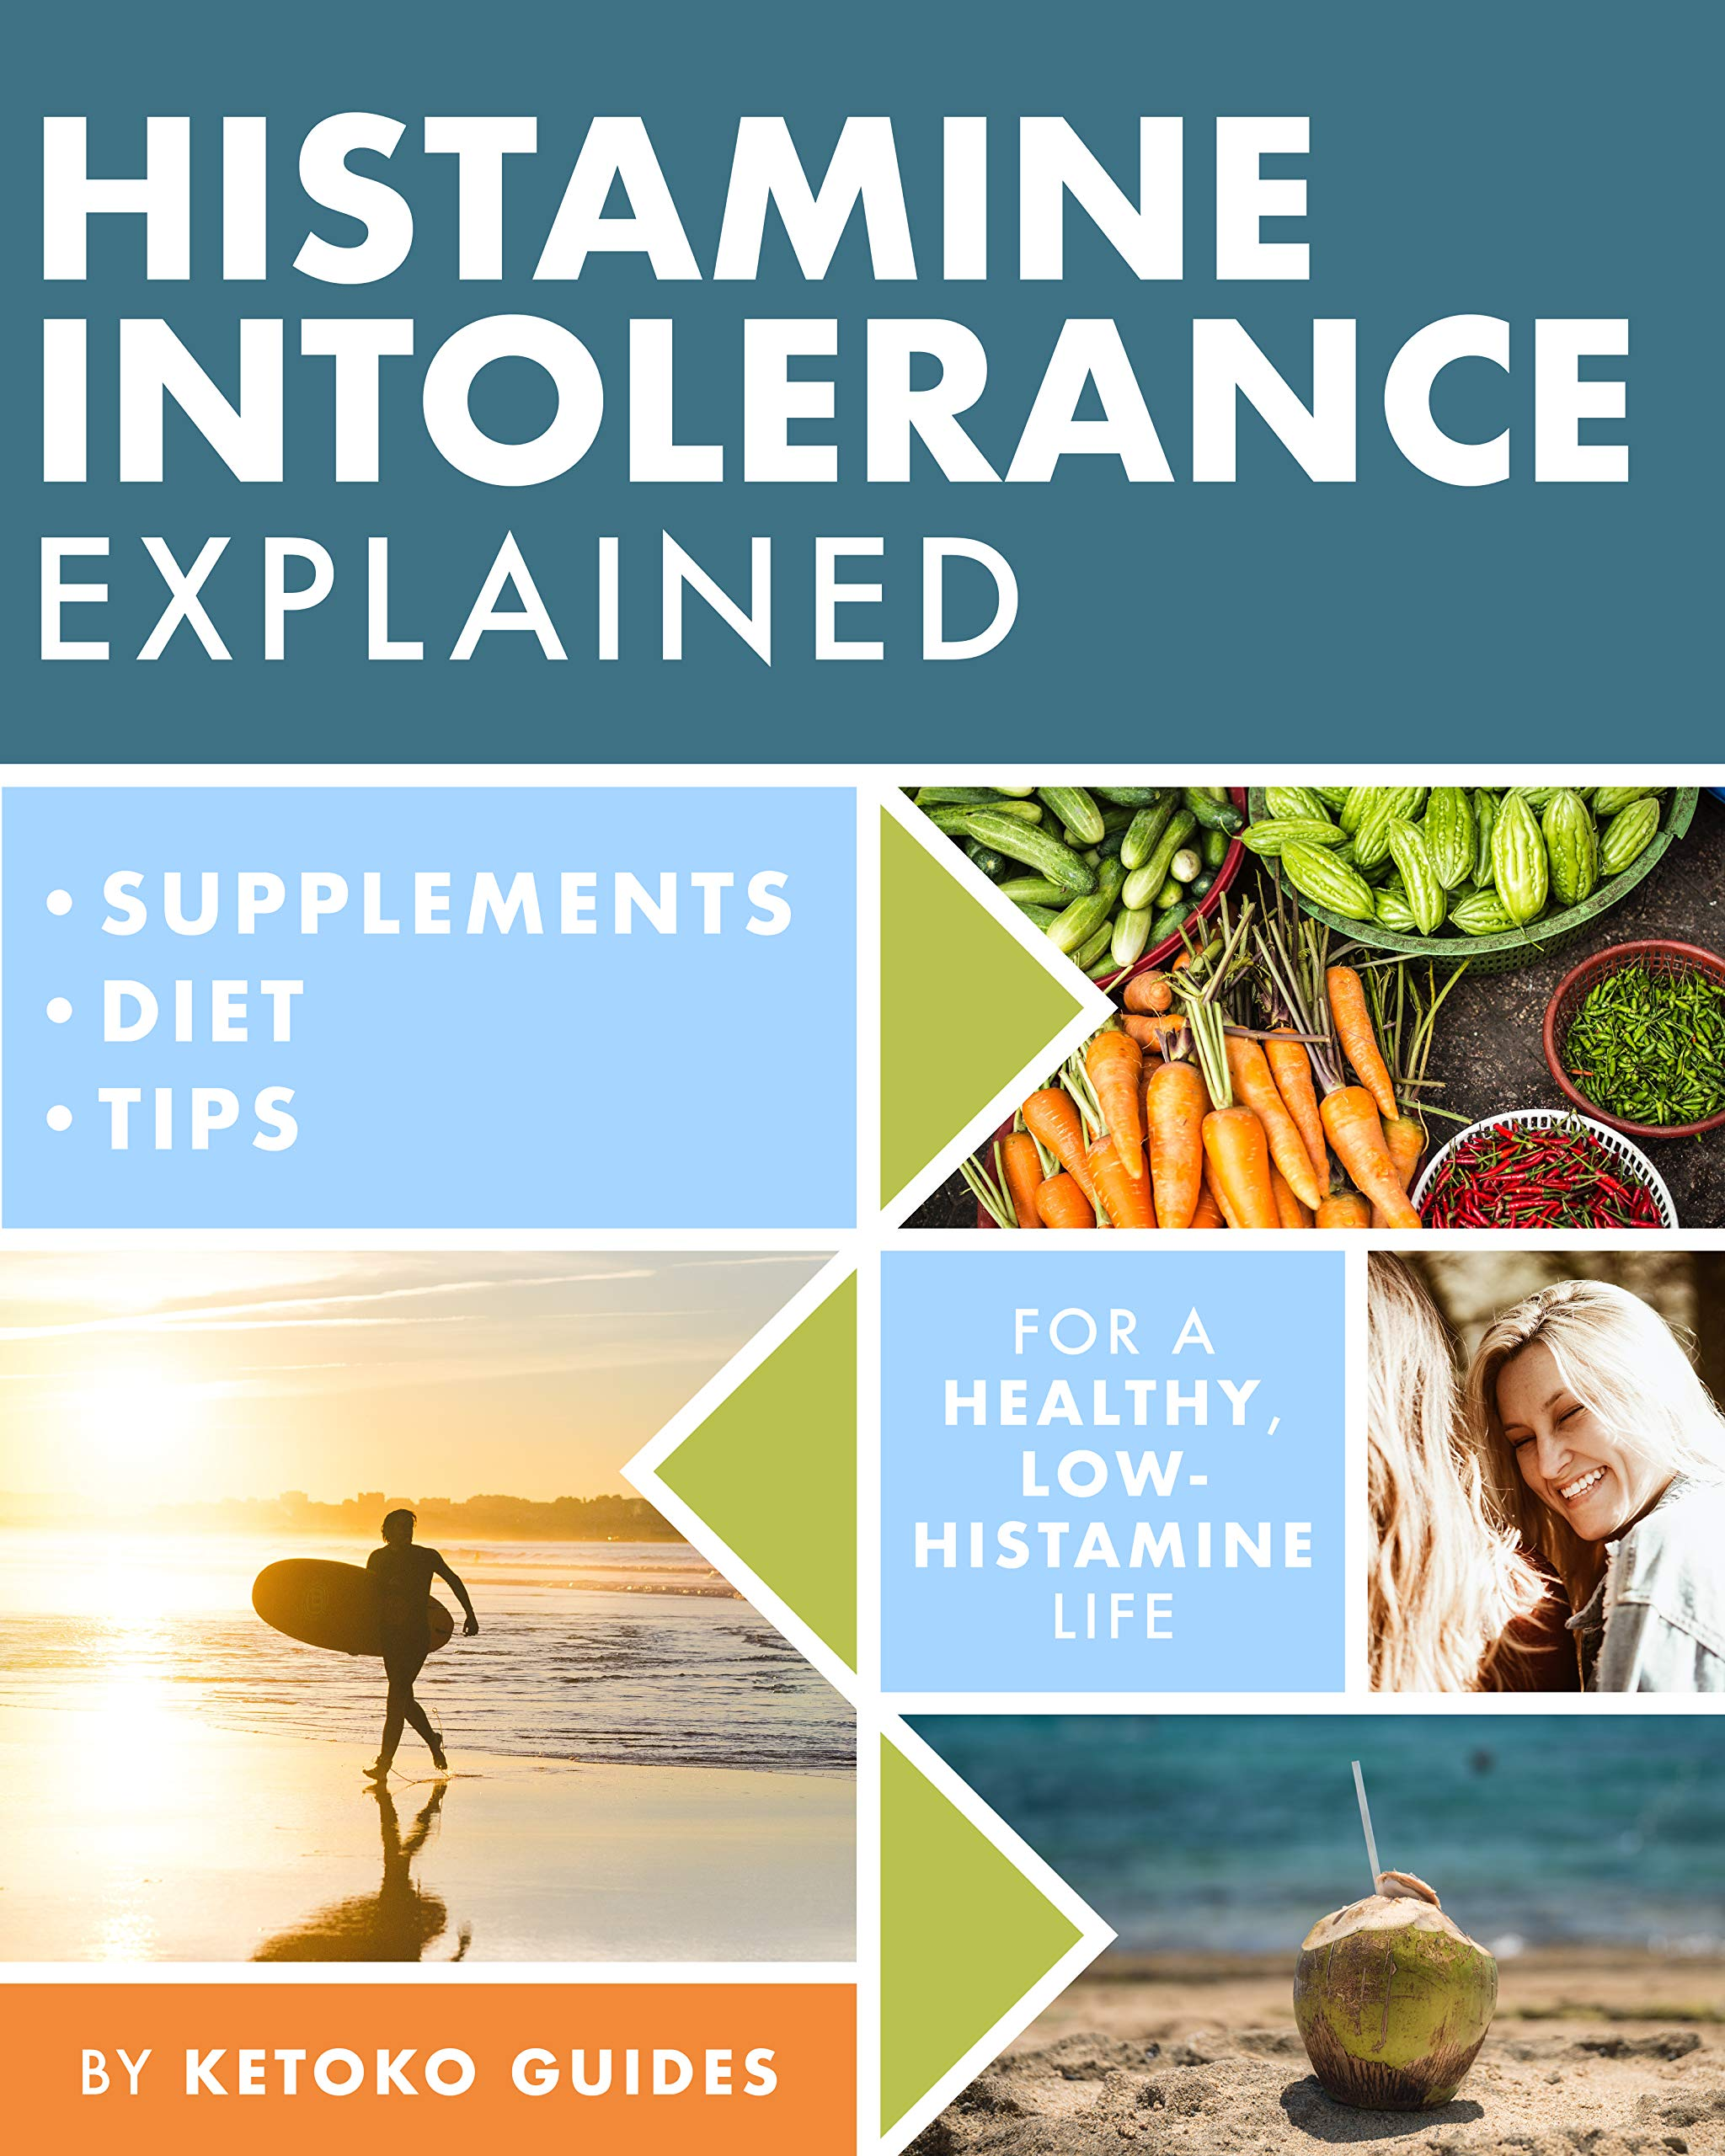 Histamine Intolerance Explained  12 Steps To Building A Healthy Low Histamine Lifestyle Featuring The Best Low Histamine Supplements And Low Histamine Diet  English Edition